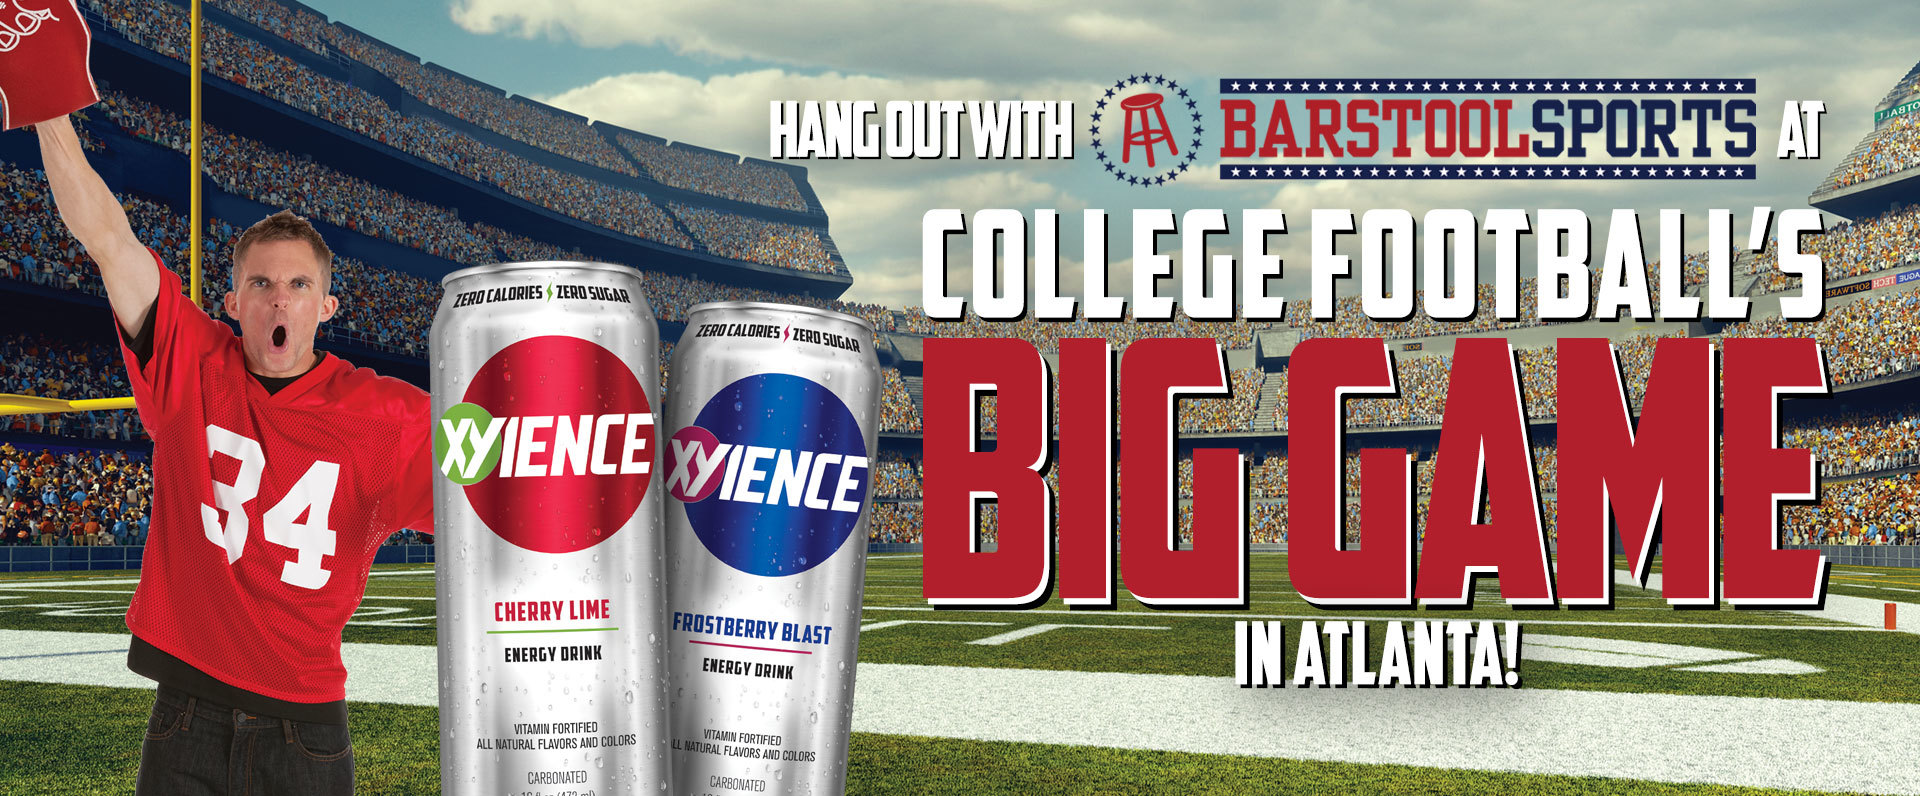 Enter to win a trip to College Football's BIG GAME in Atlanta! The prize includes airfare, hotel accommodations and game tickets for you and a guest, PLUS a meet-and-greet with Barstool Sports personalities!